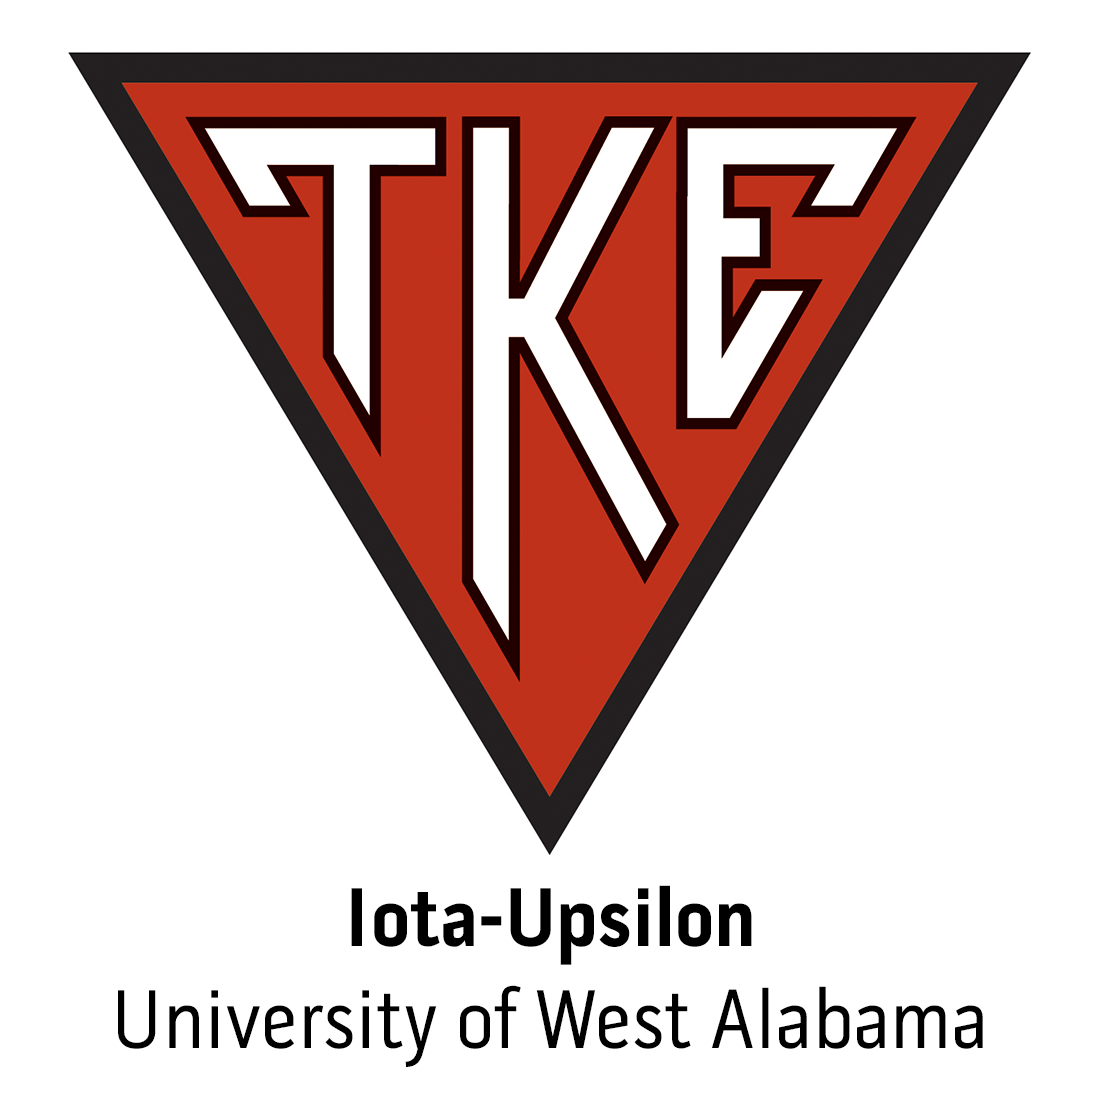 Iota-Upsilon Chapter at University of West Alabama